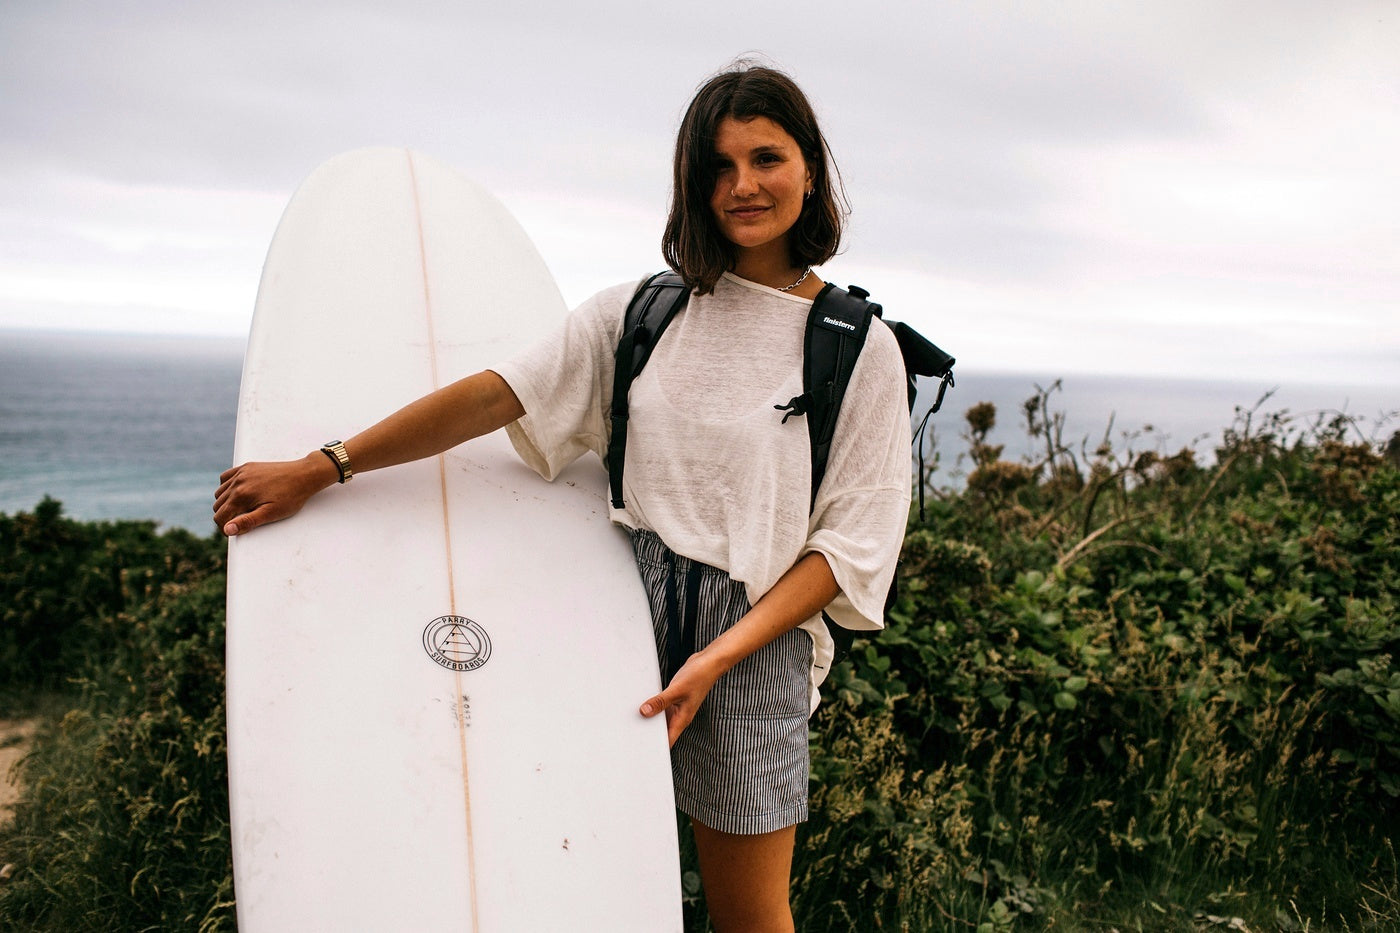 Clara Jonas prepares to head out into the surf with her beloved longboard